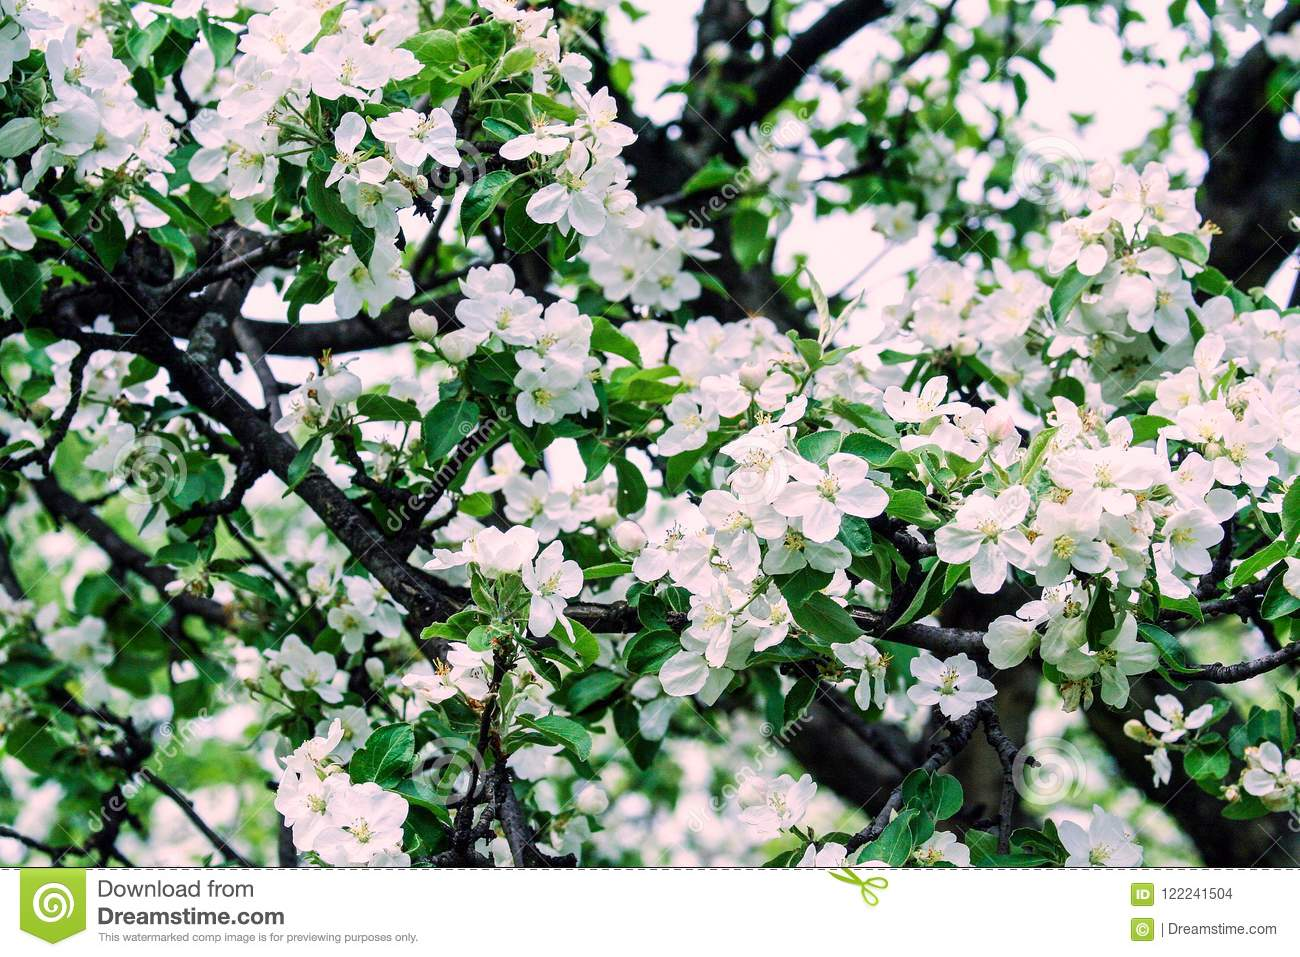 Apple Garden In Moscow Blooming White Flowers Stock Photo Image